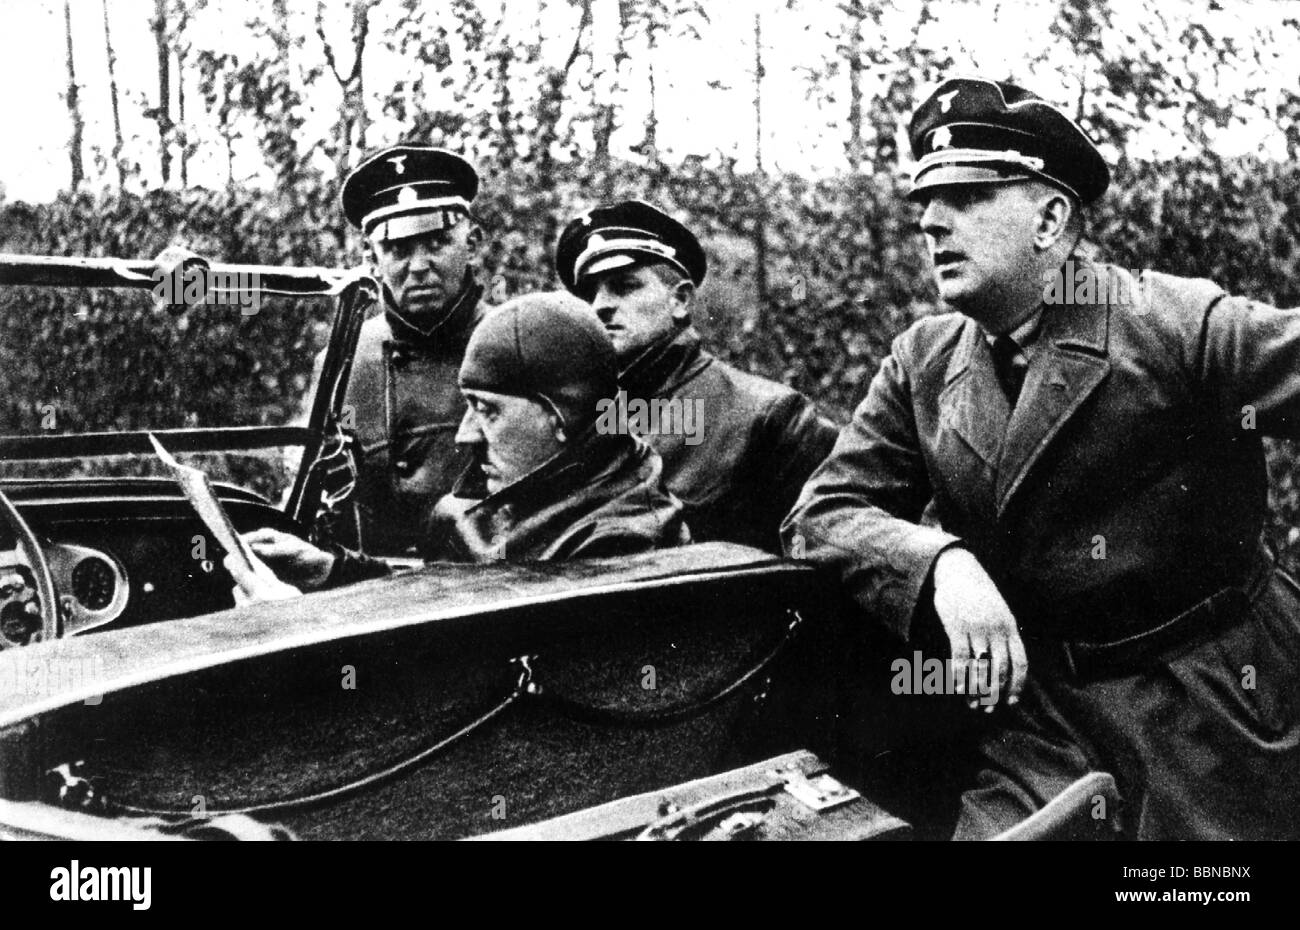 Hitler, Adolf, 20.4.1889 - 30.4.1945, German politician (NSDAP) Chancellor since 30.1.1933, in car, orientating - Stock Image